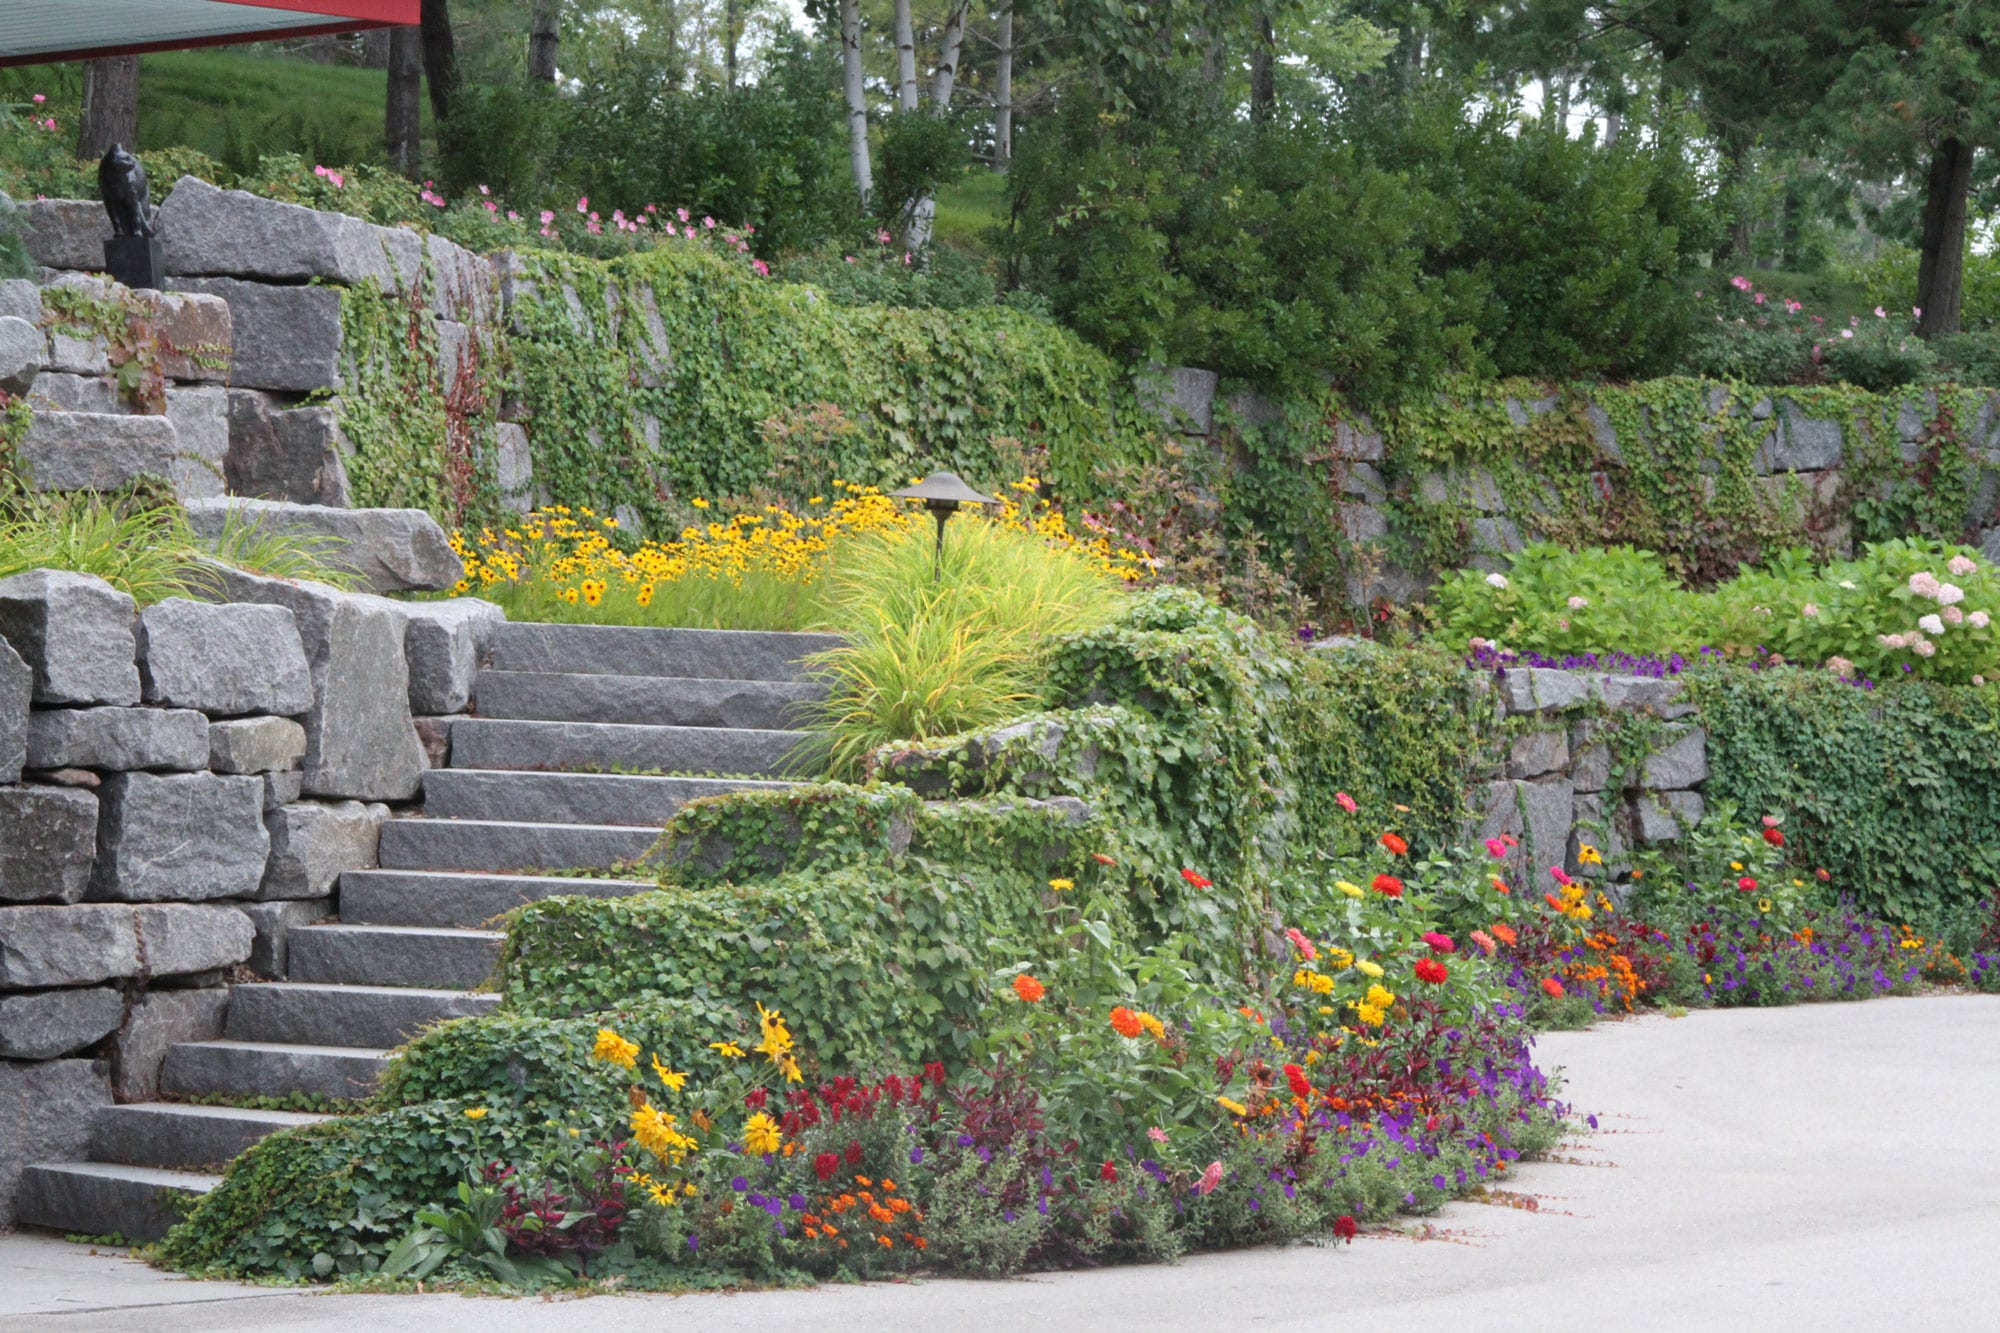 floral and vine coverage for beautiful stone steps and stone retaining walls